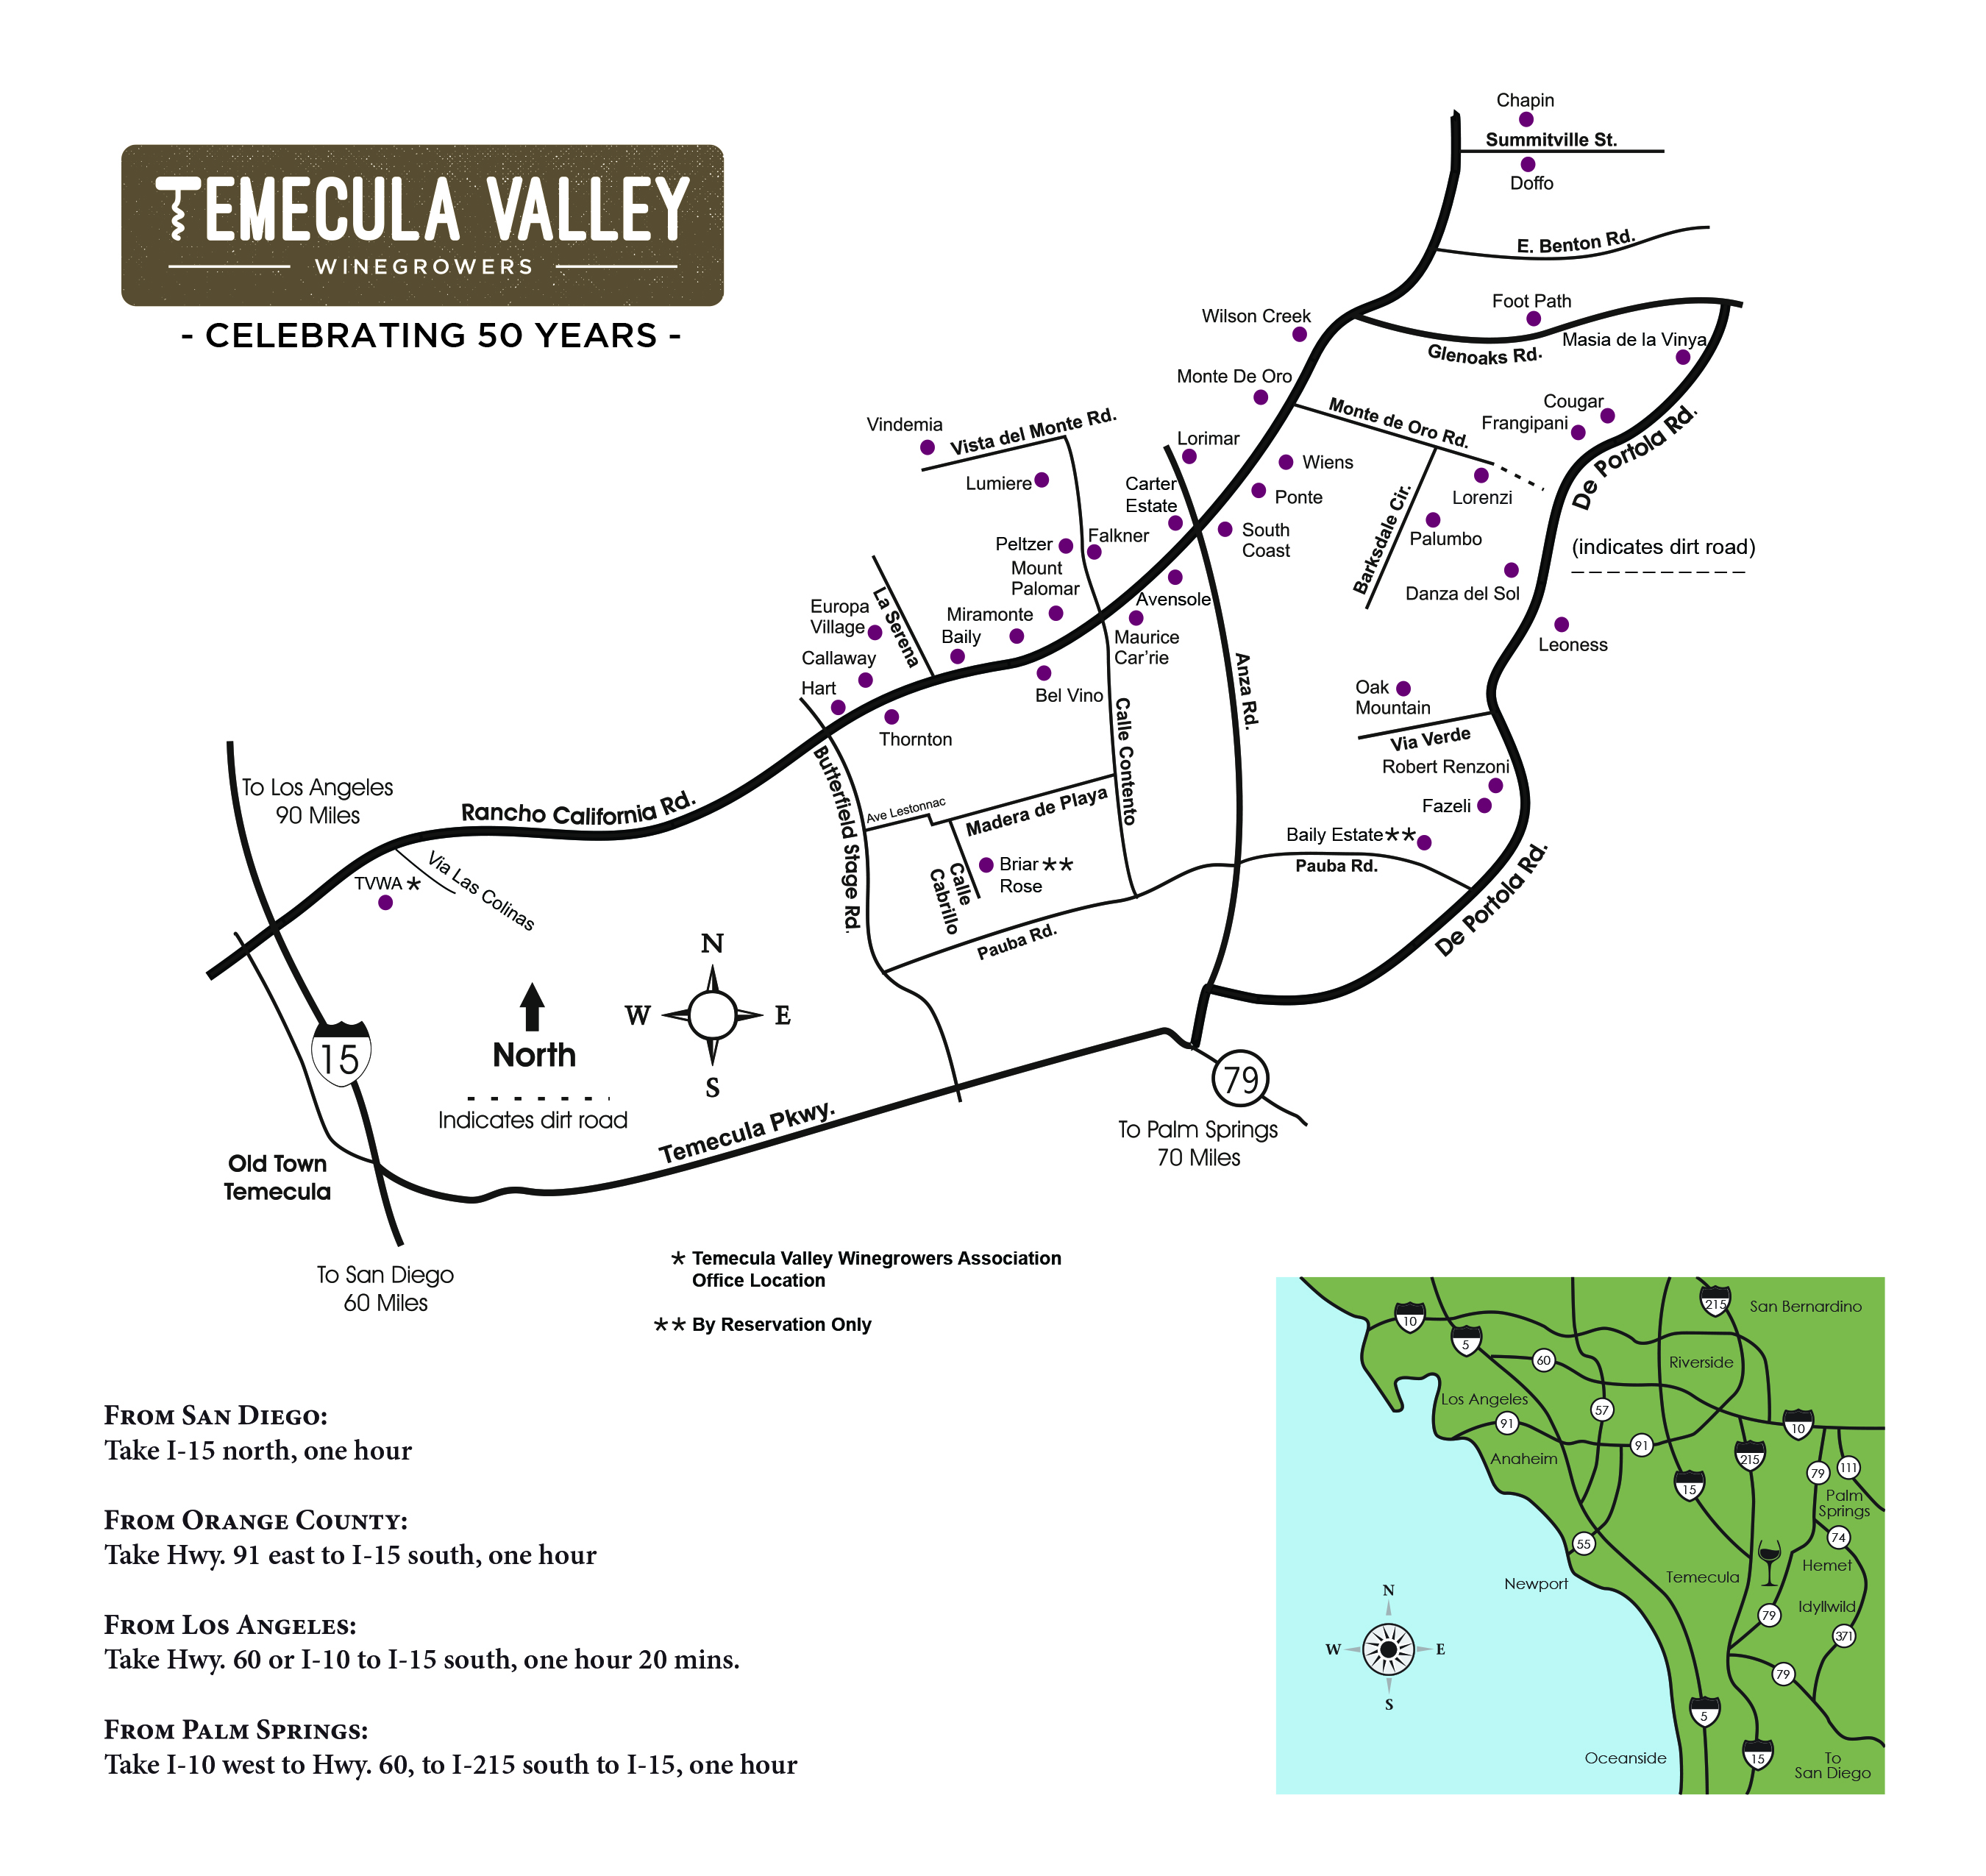 Temecula Wineries Map Temecula Valley Winegrowers Association   Winery Map Temecula Wineries Map